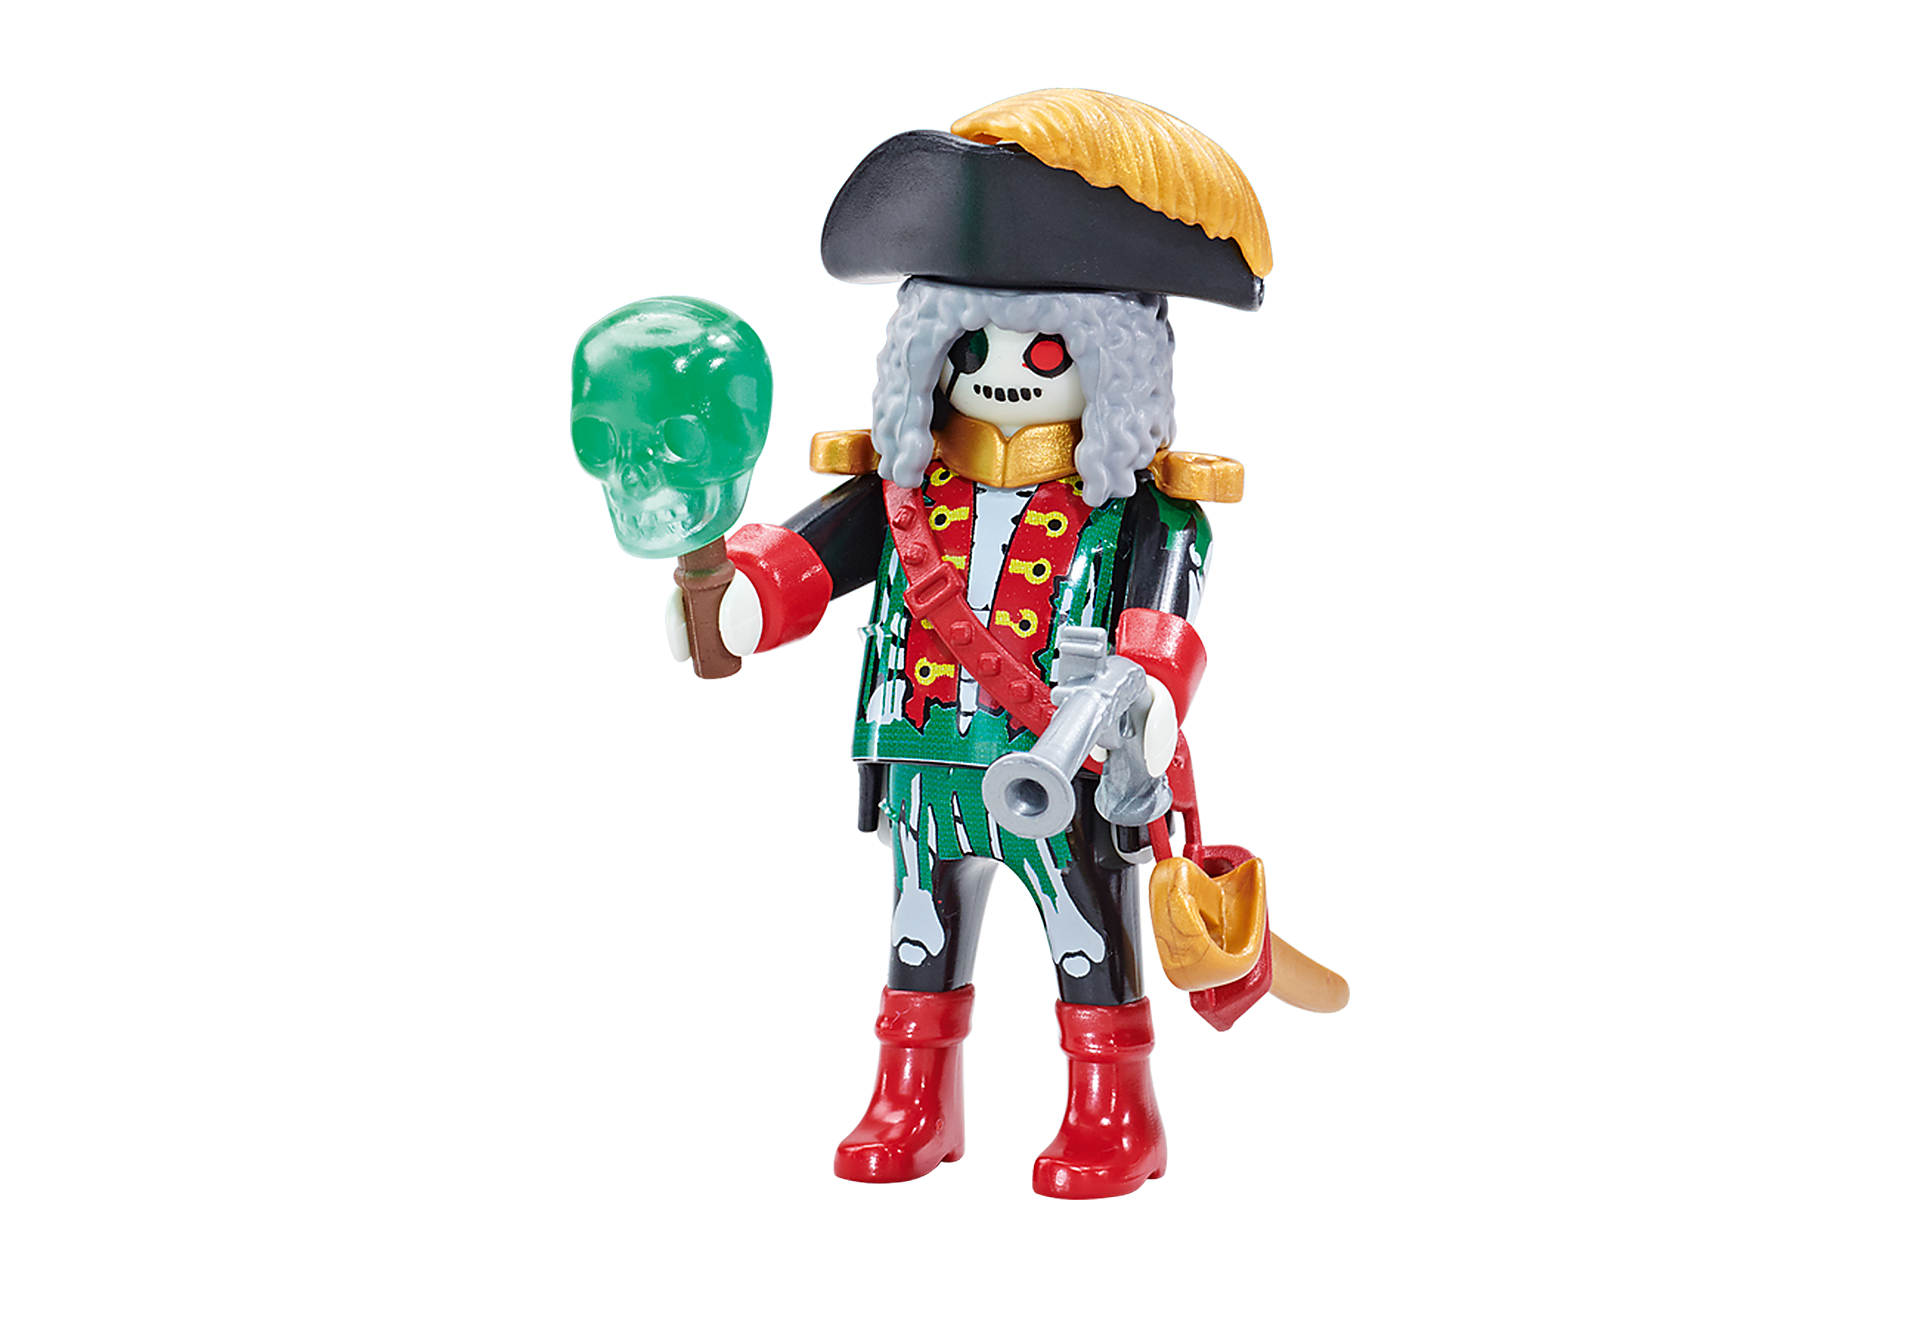 http://media.playmobil.com/i/playmobil/6591_product_detail/Capitán Pirata Fantasma